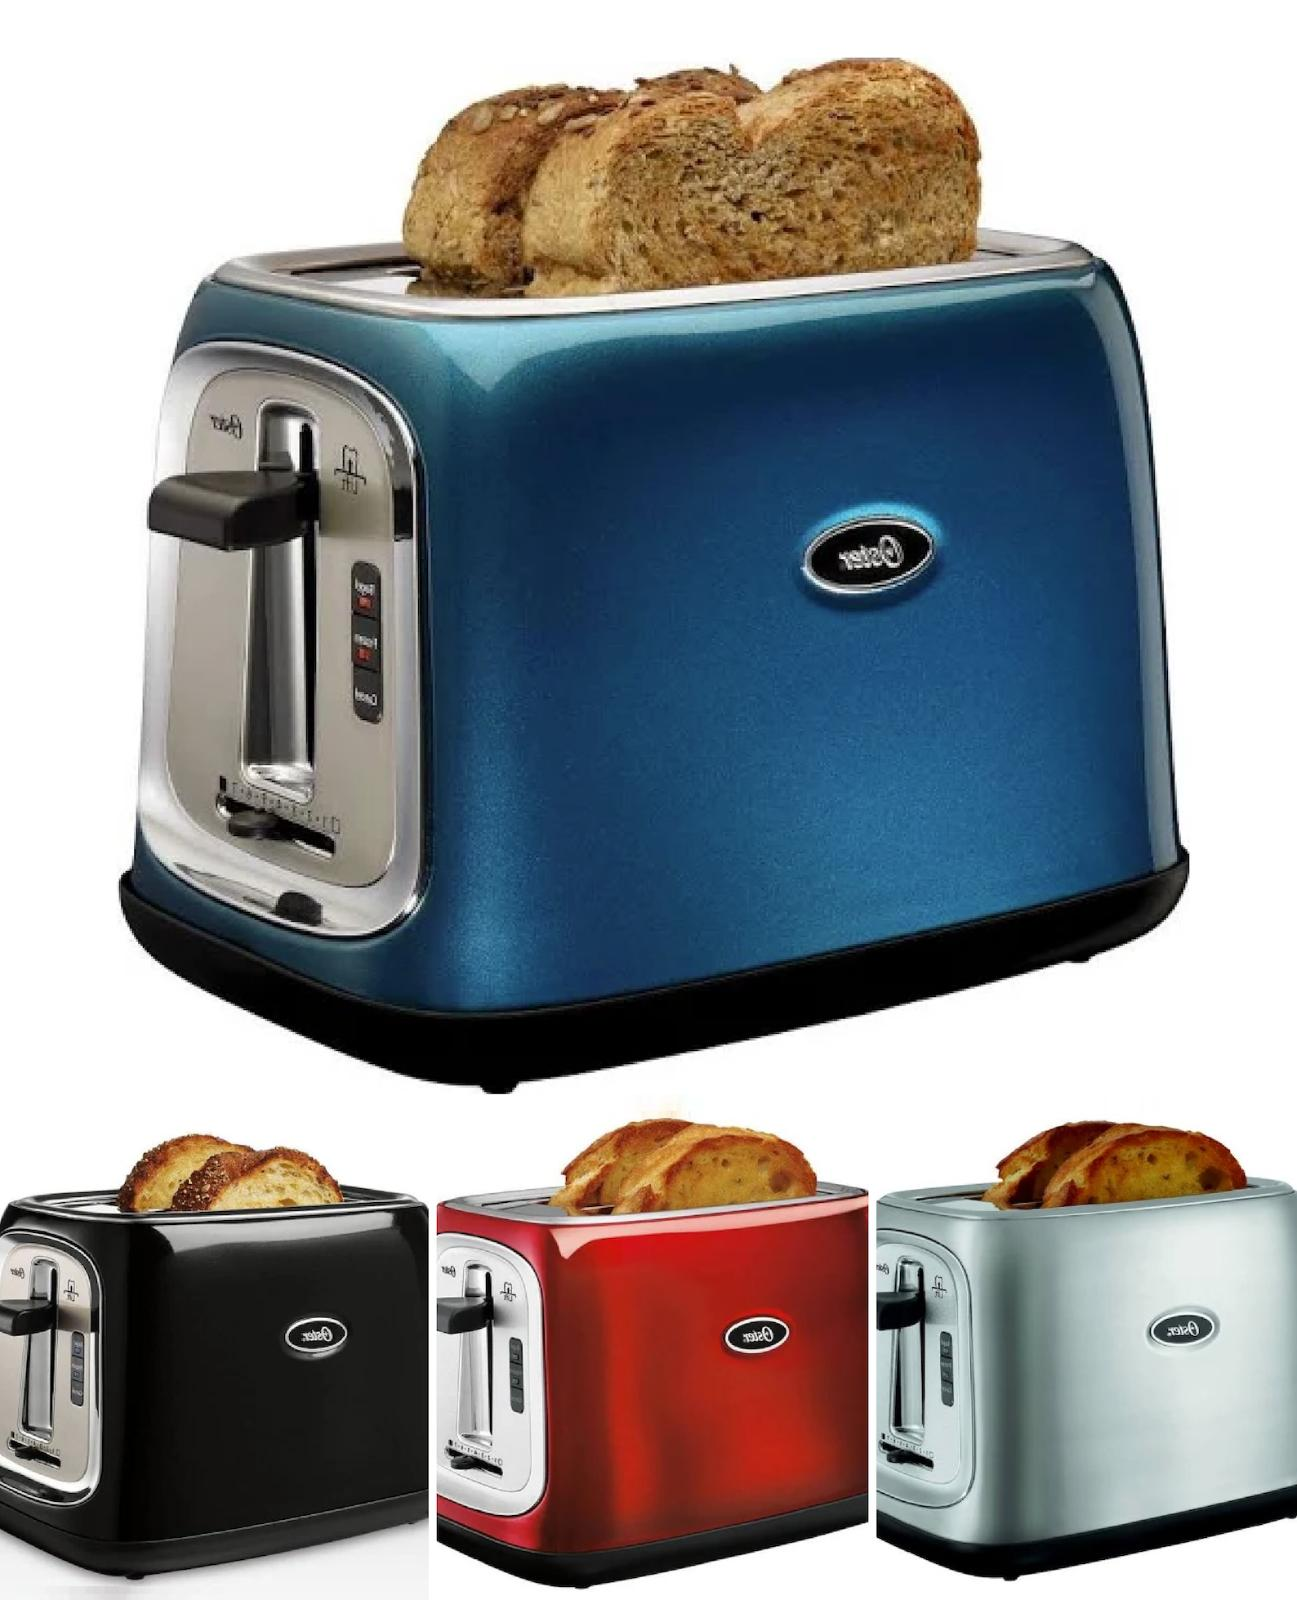 Oster Special sale TSSTTRJB0T 2-Slice Toaster - 4 Fashion Co